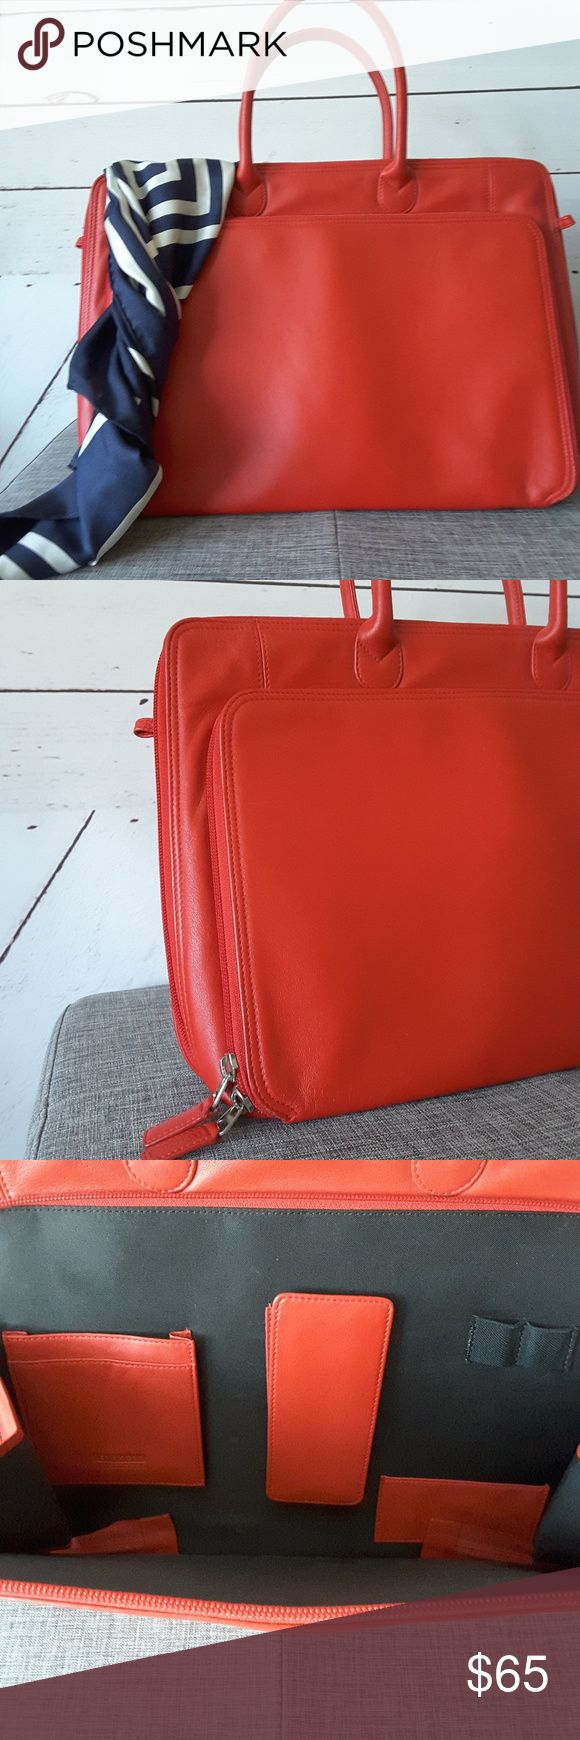 "Like New Red Levenger Briefcase Bag Buttery soft and bright red this is a great soft briefcase that will carry a thin 15"" laptop and all of your other essentials. Only carried it to interviews and yes, I did get every job! This is a classic case with simple, elegant lines - nothing fussy and a great pop of color. It is missing the long shoulder strap but you may be able to find one on the web. Levenger Bags Laptop Bags"